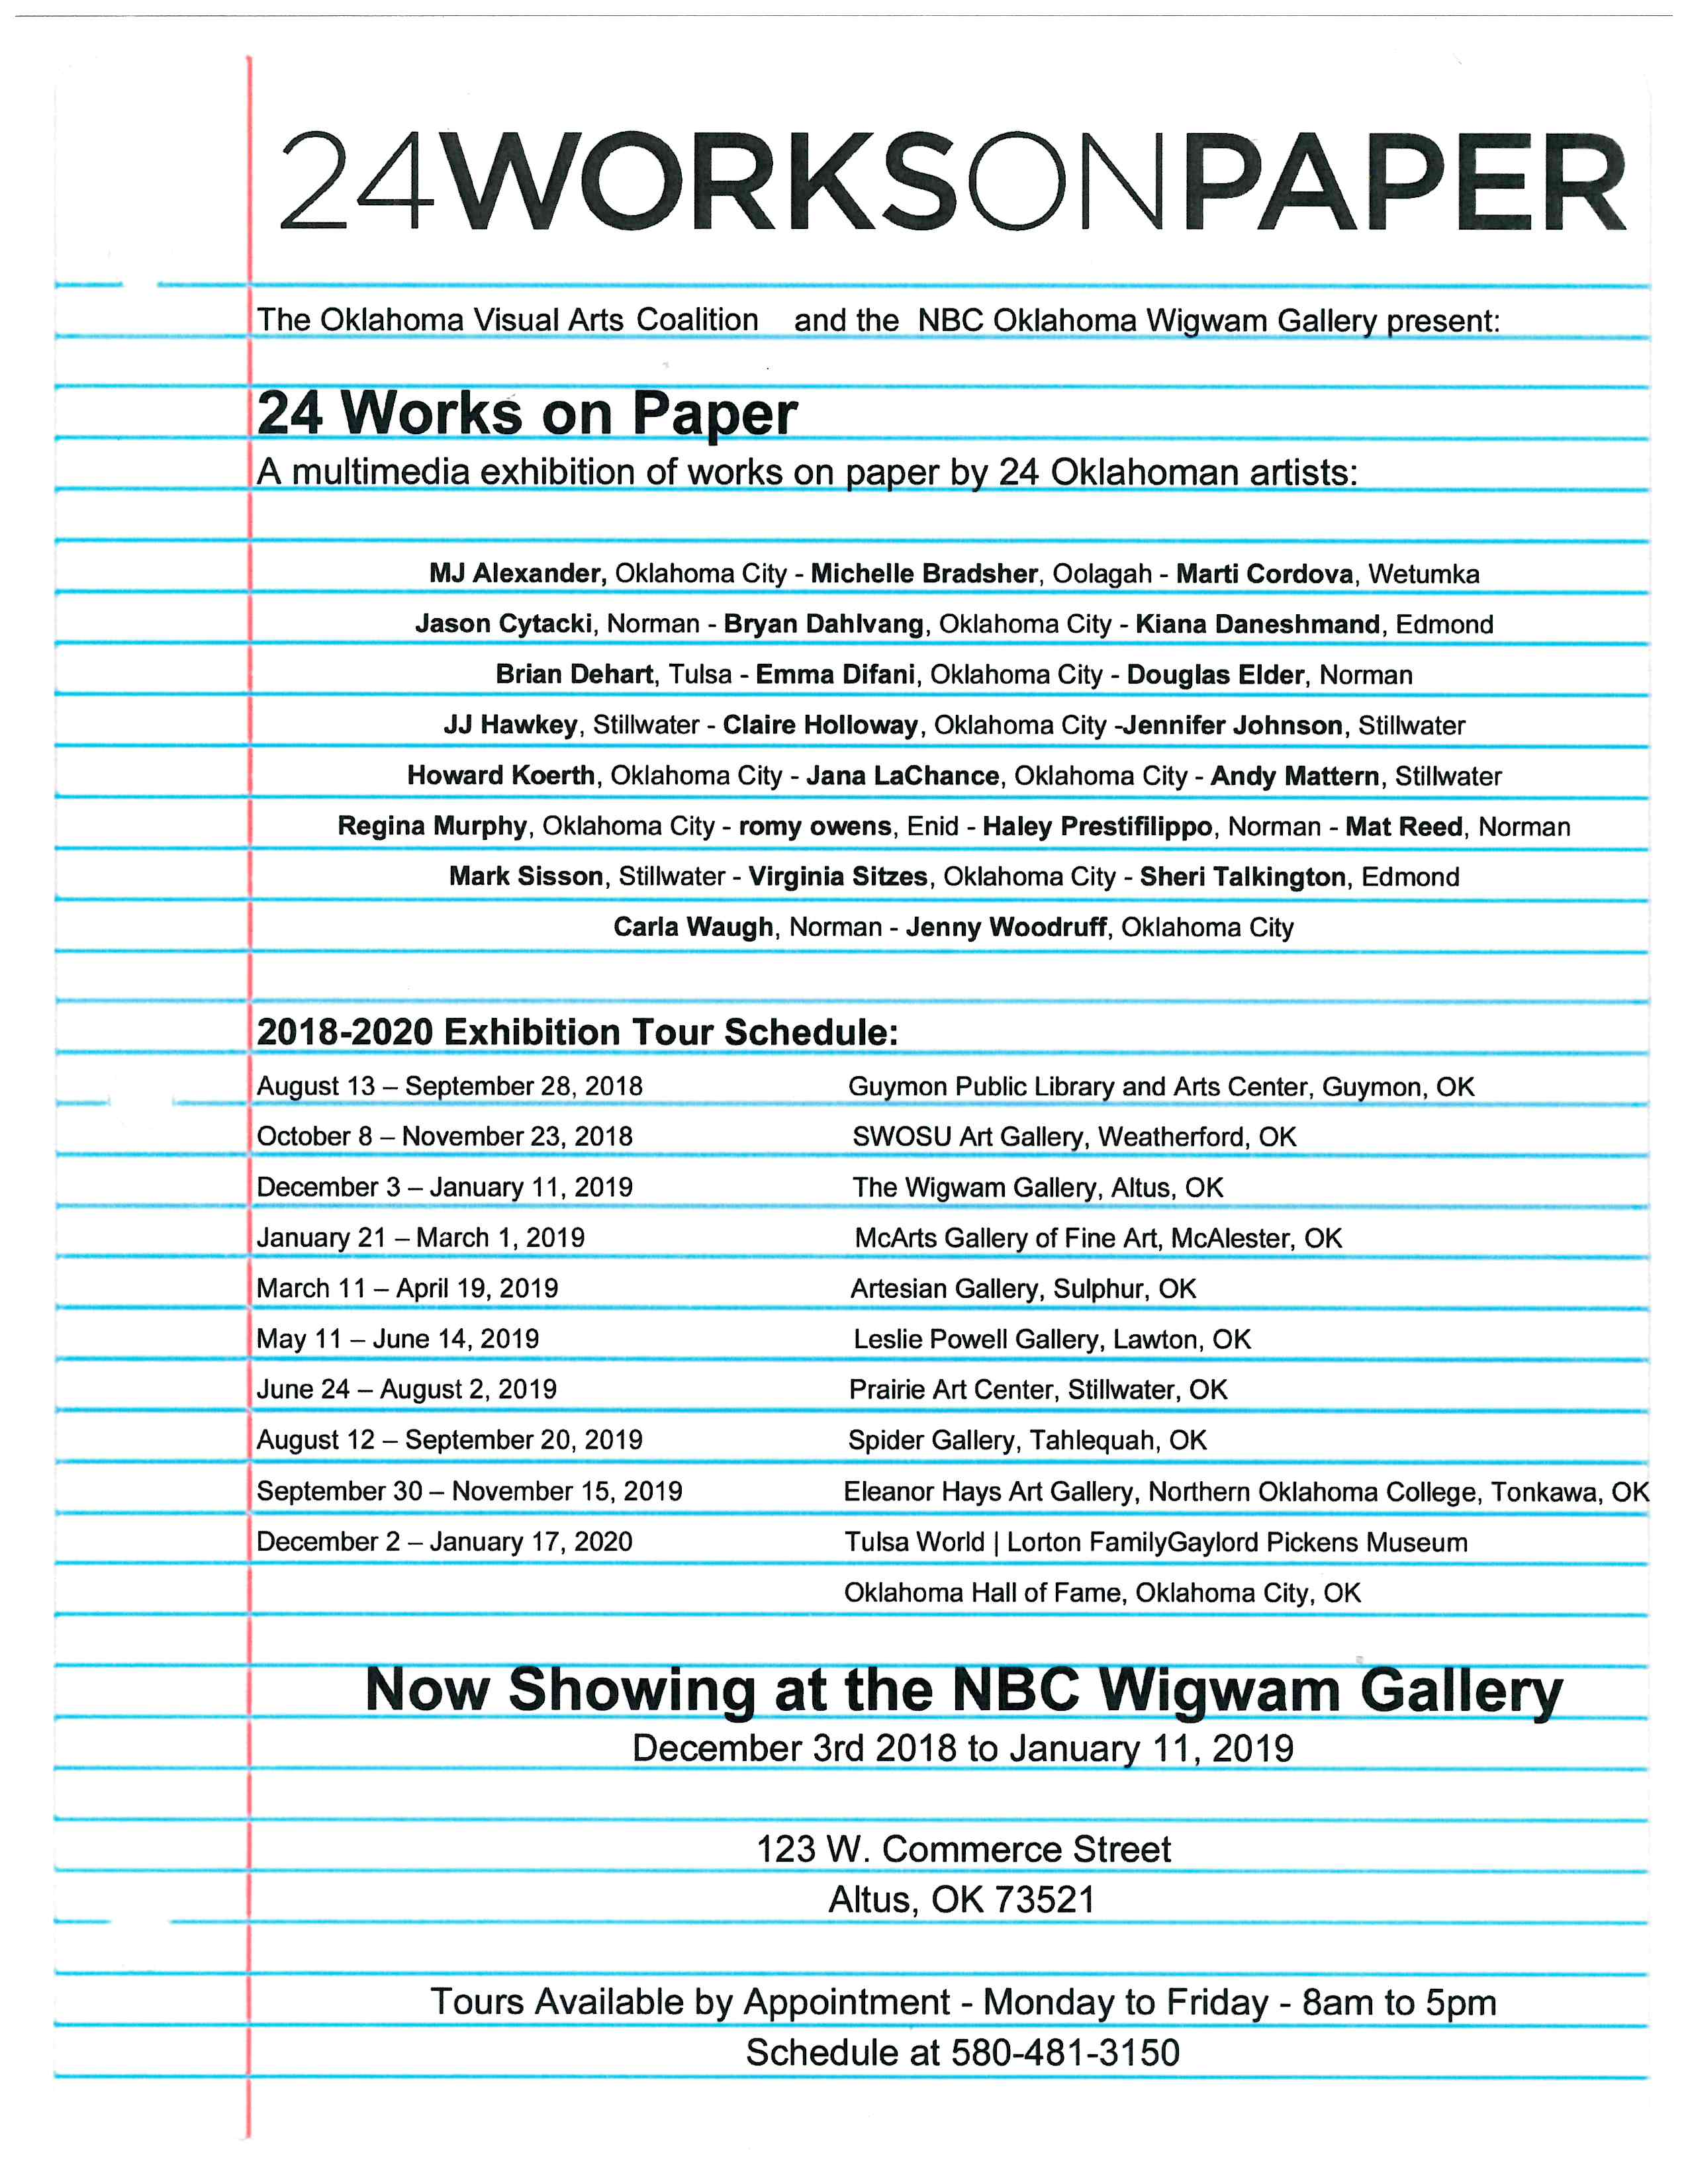 24WORKSONPAPER @ NBC Wigwam Gallery